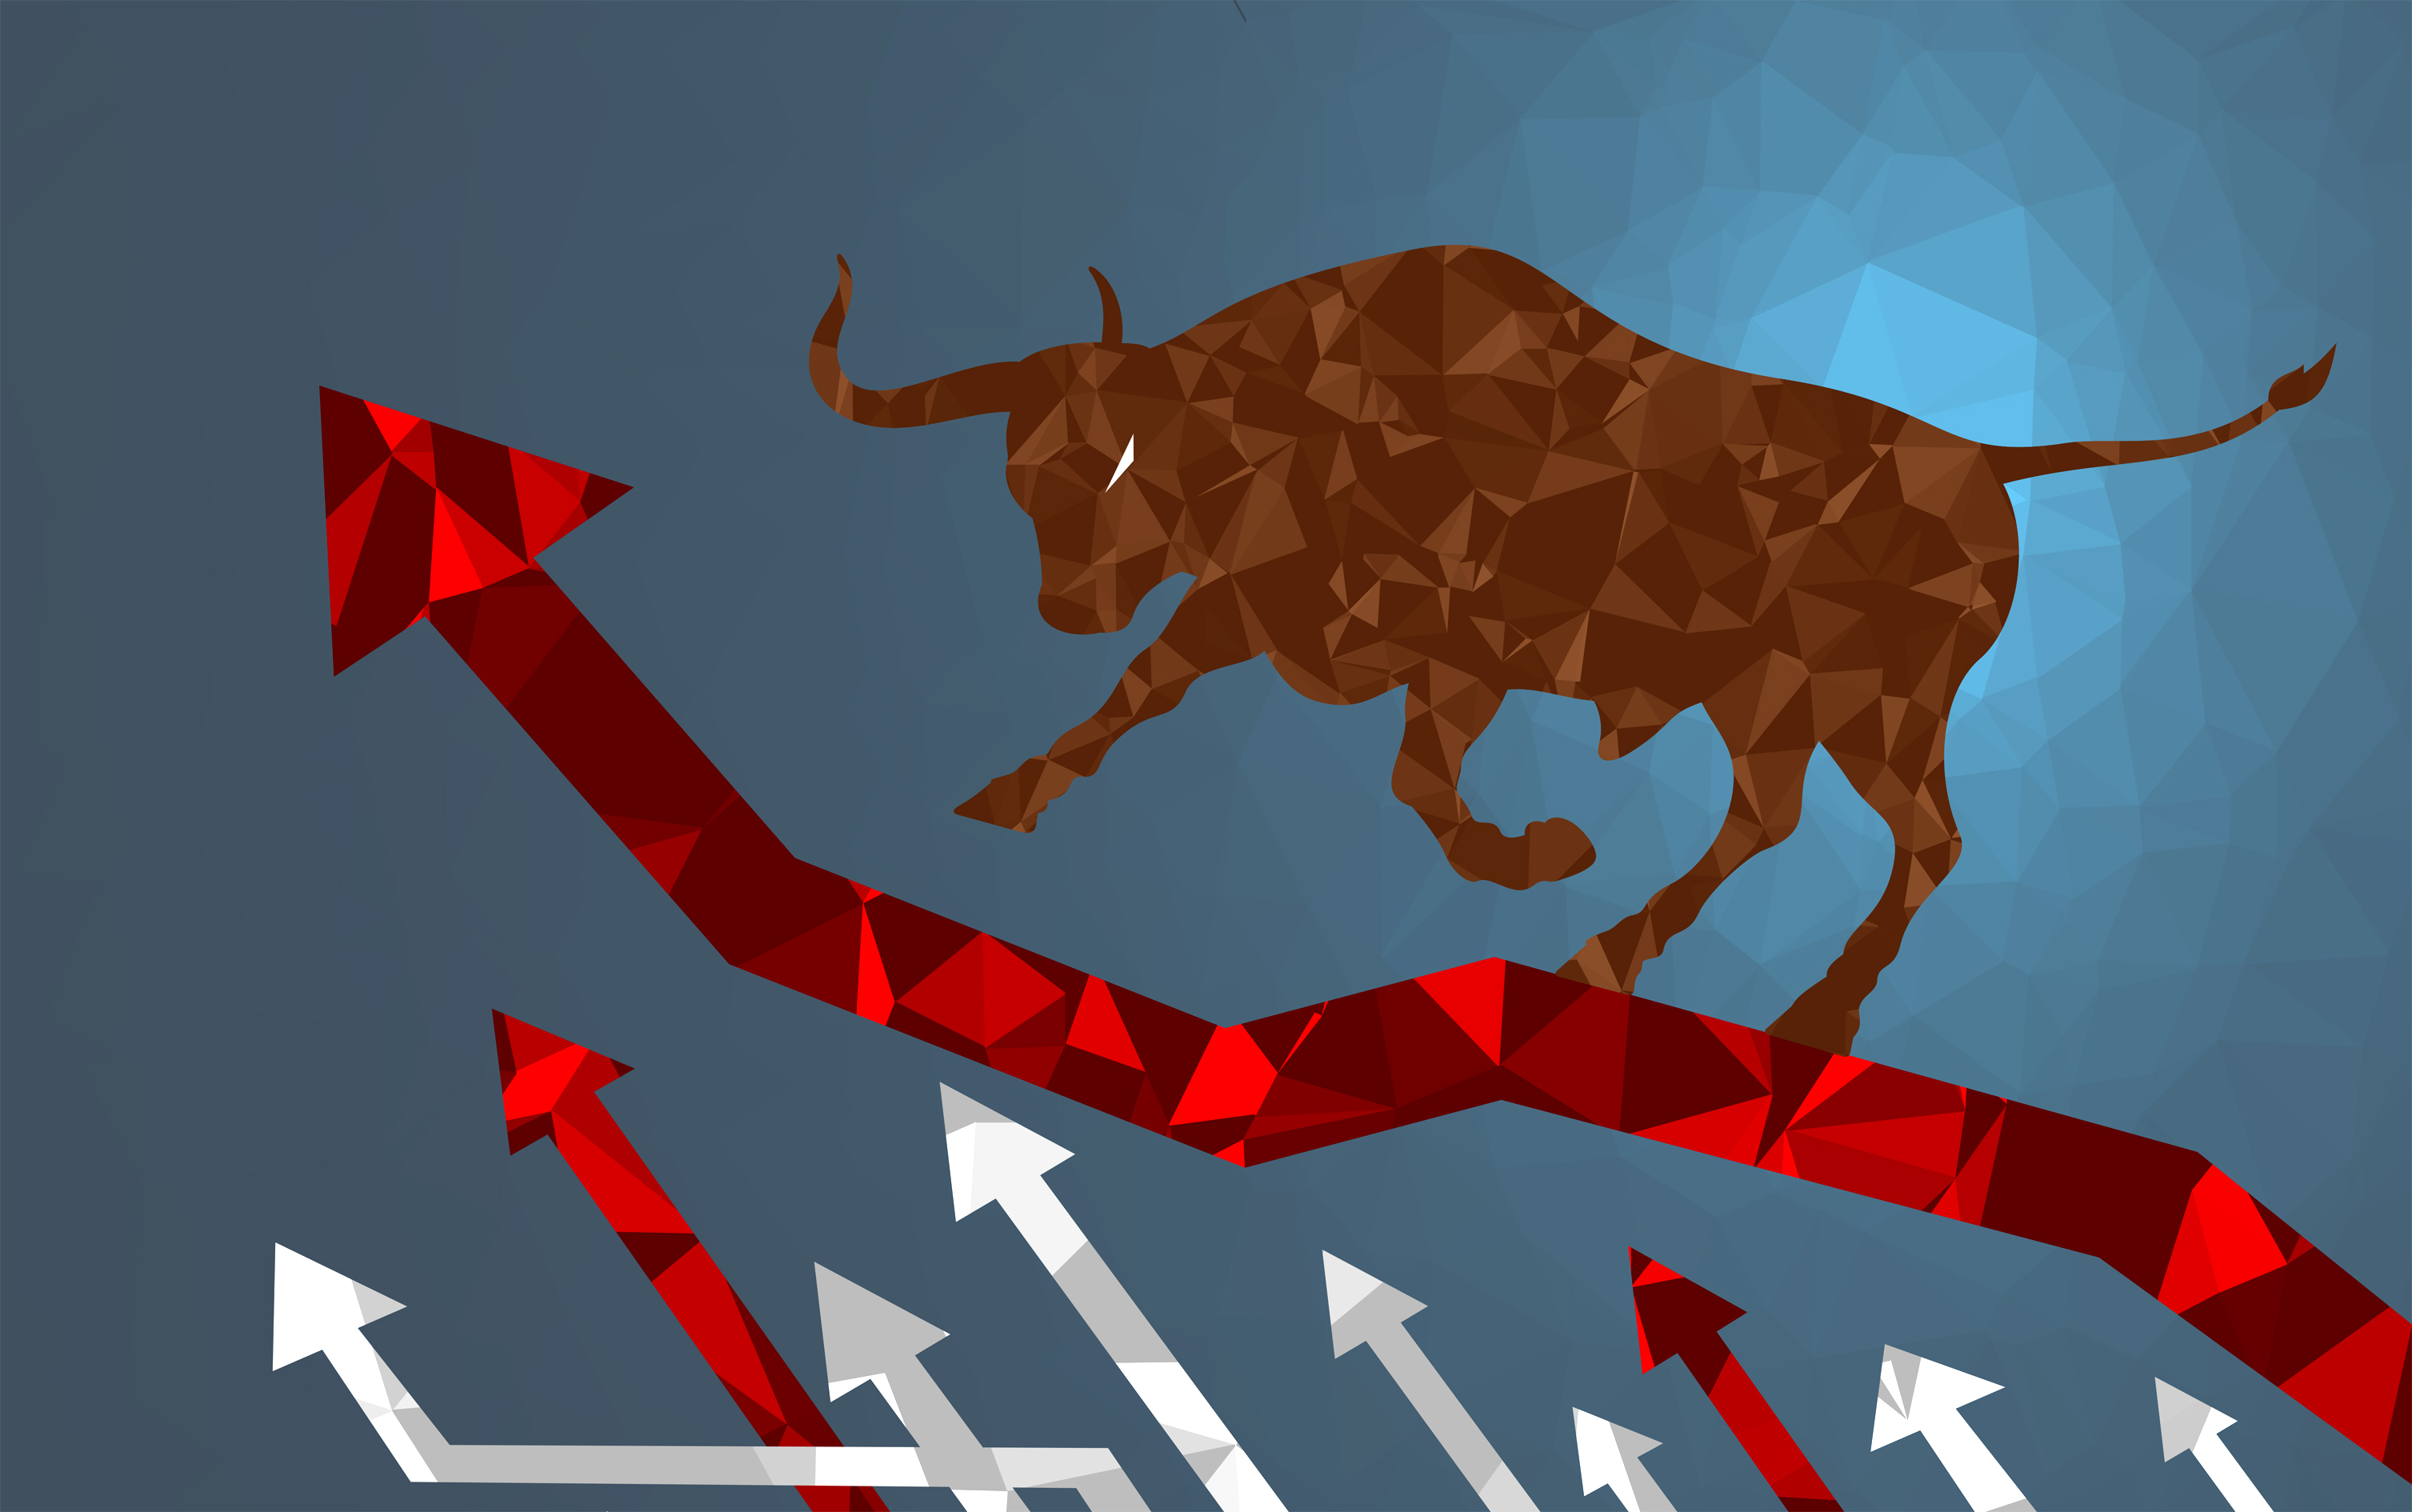 Bull market - markets are climbing photo